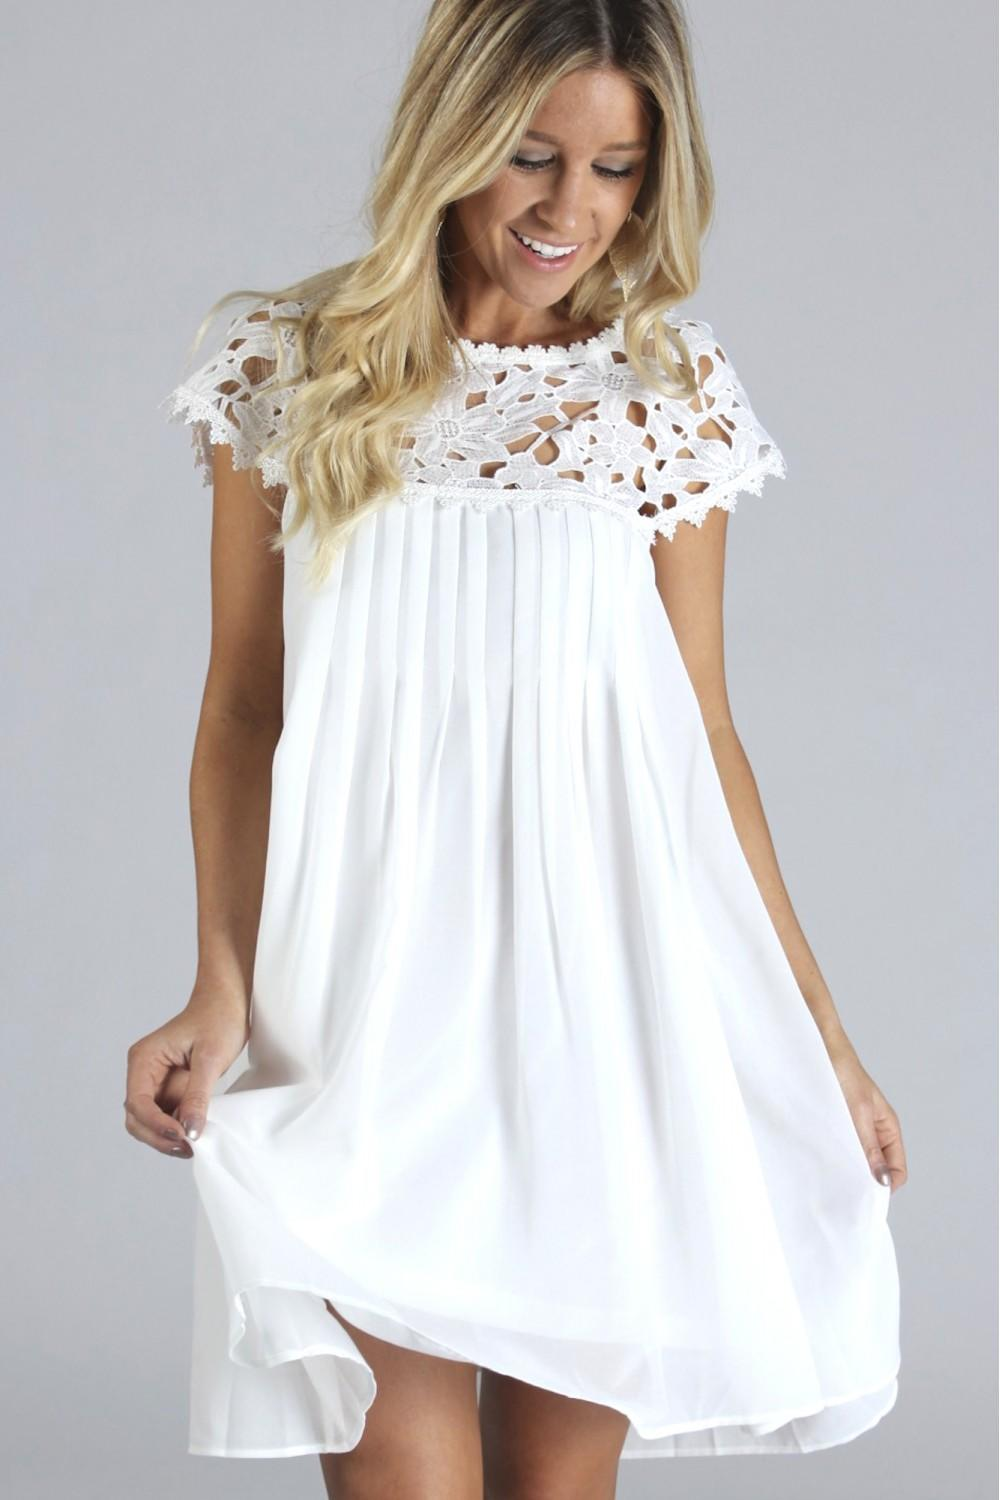 Lace Baby Doll Dress White from Sophie & Trey